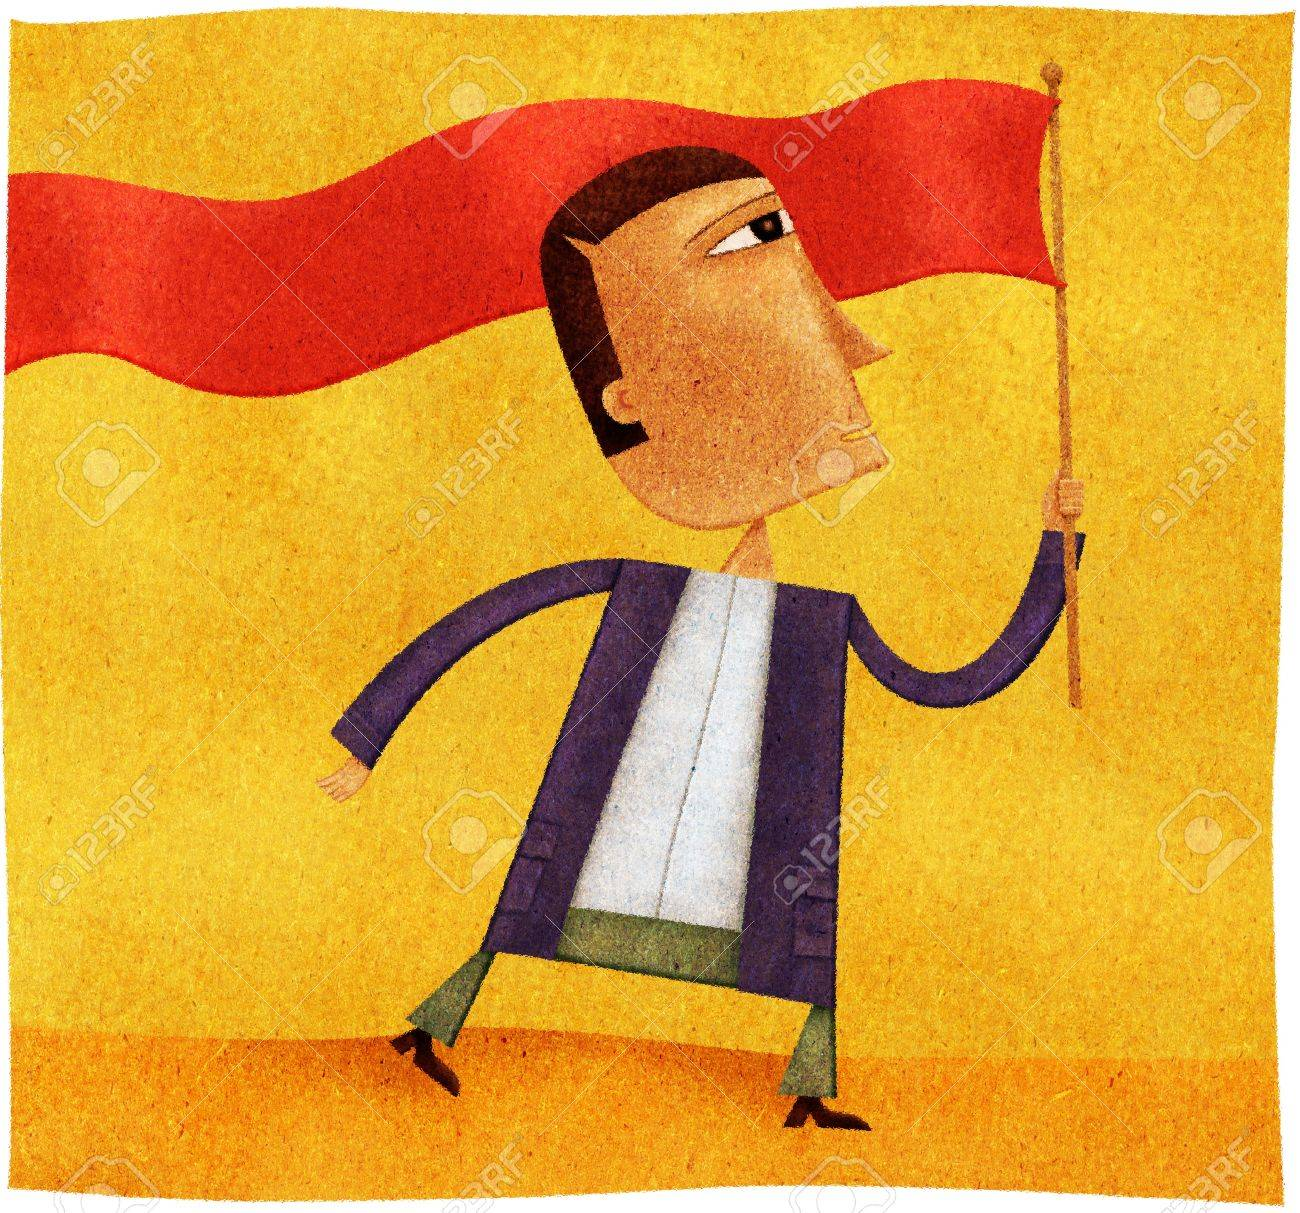 A man waving a long red banner flag Stock Photo - 15209477